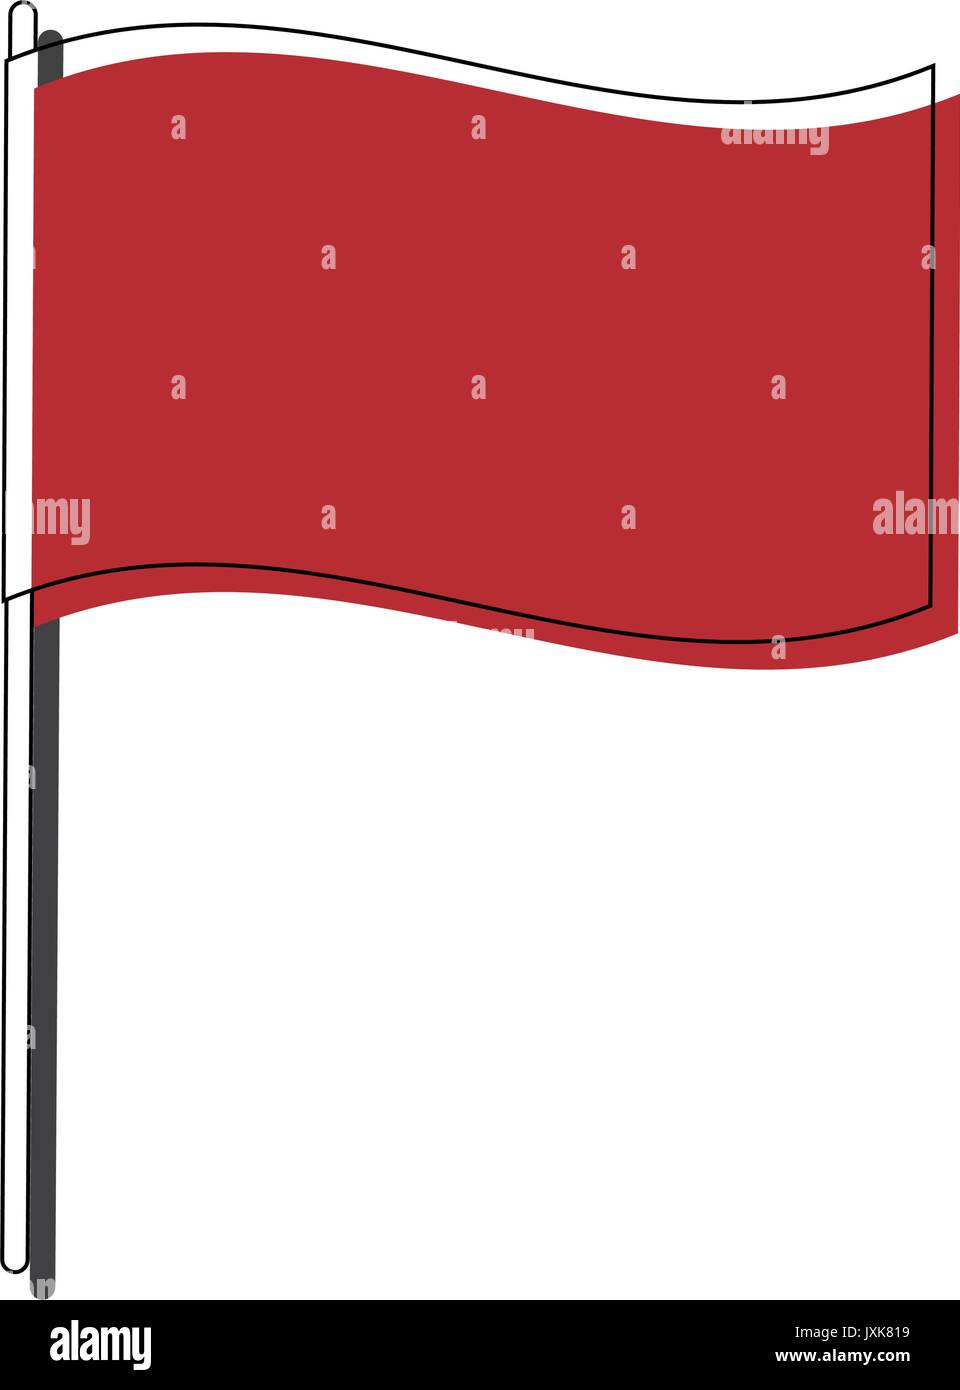 flag of nation accurate dimensions element proportions - Stock Image